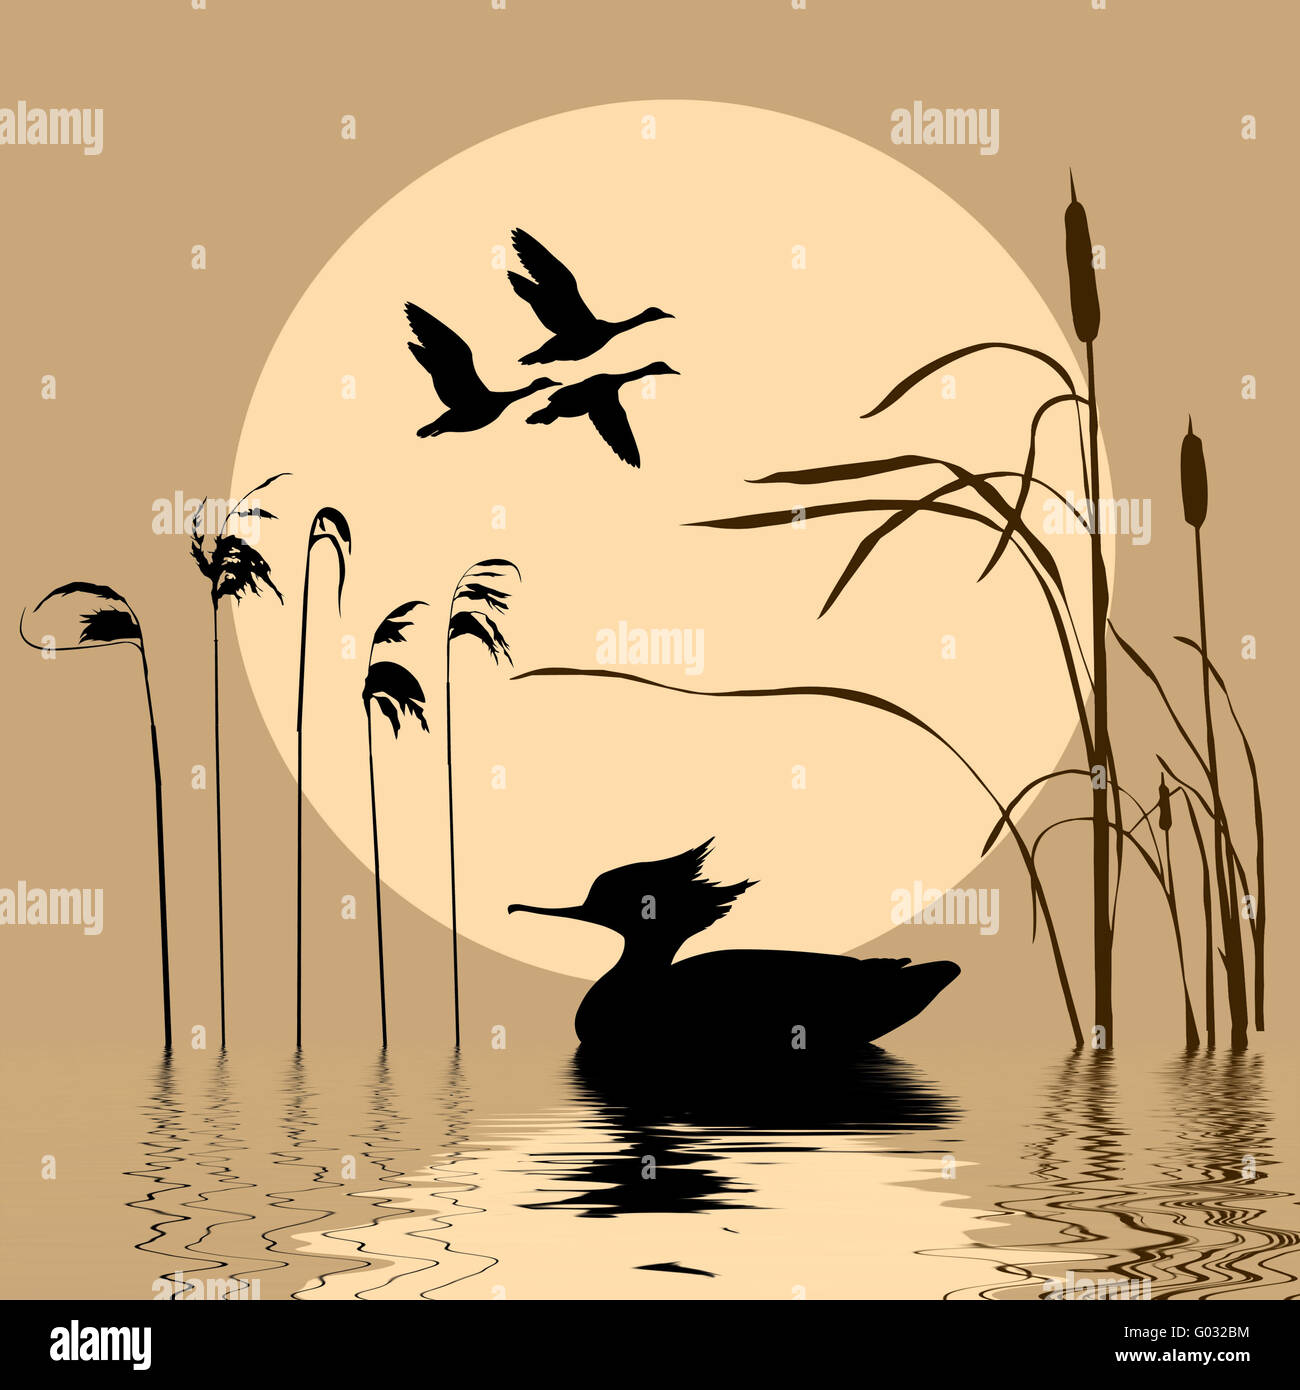 Flying Duck Painting Stock Photos & Flying Duck Painting Stock ...